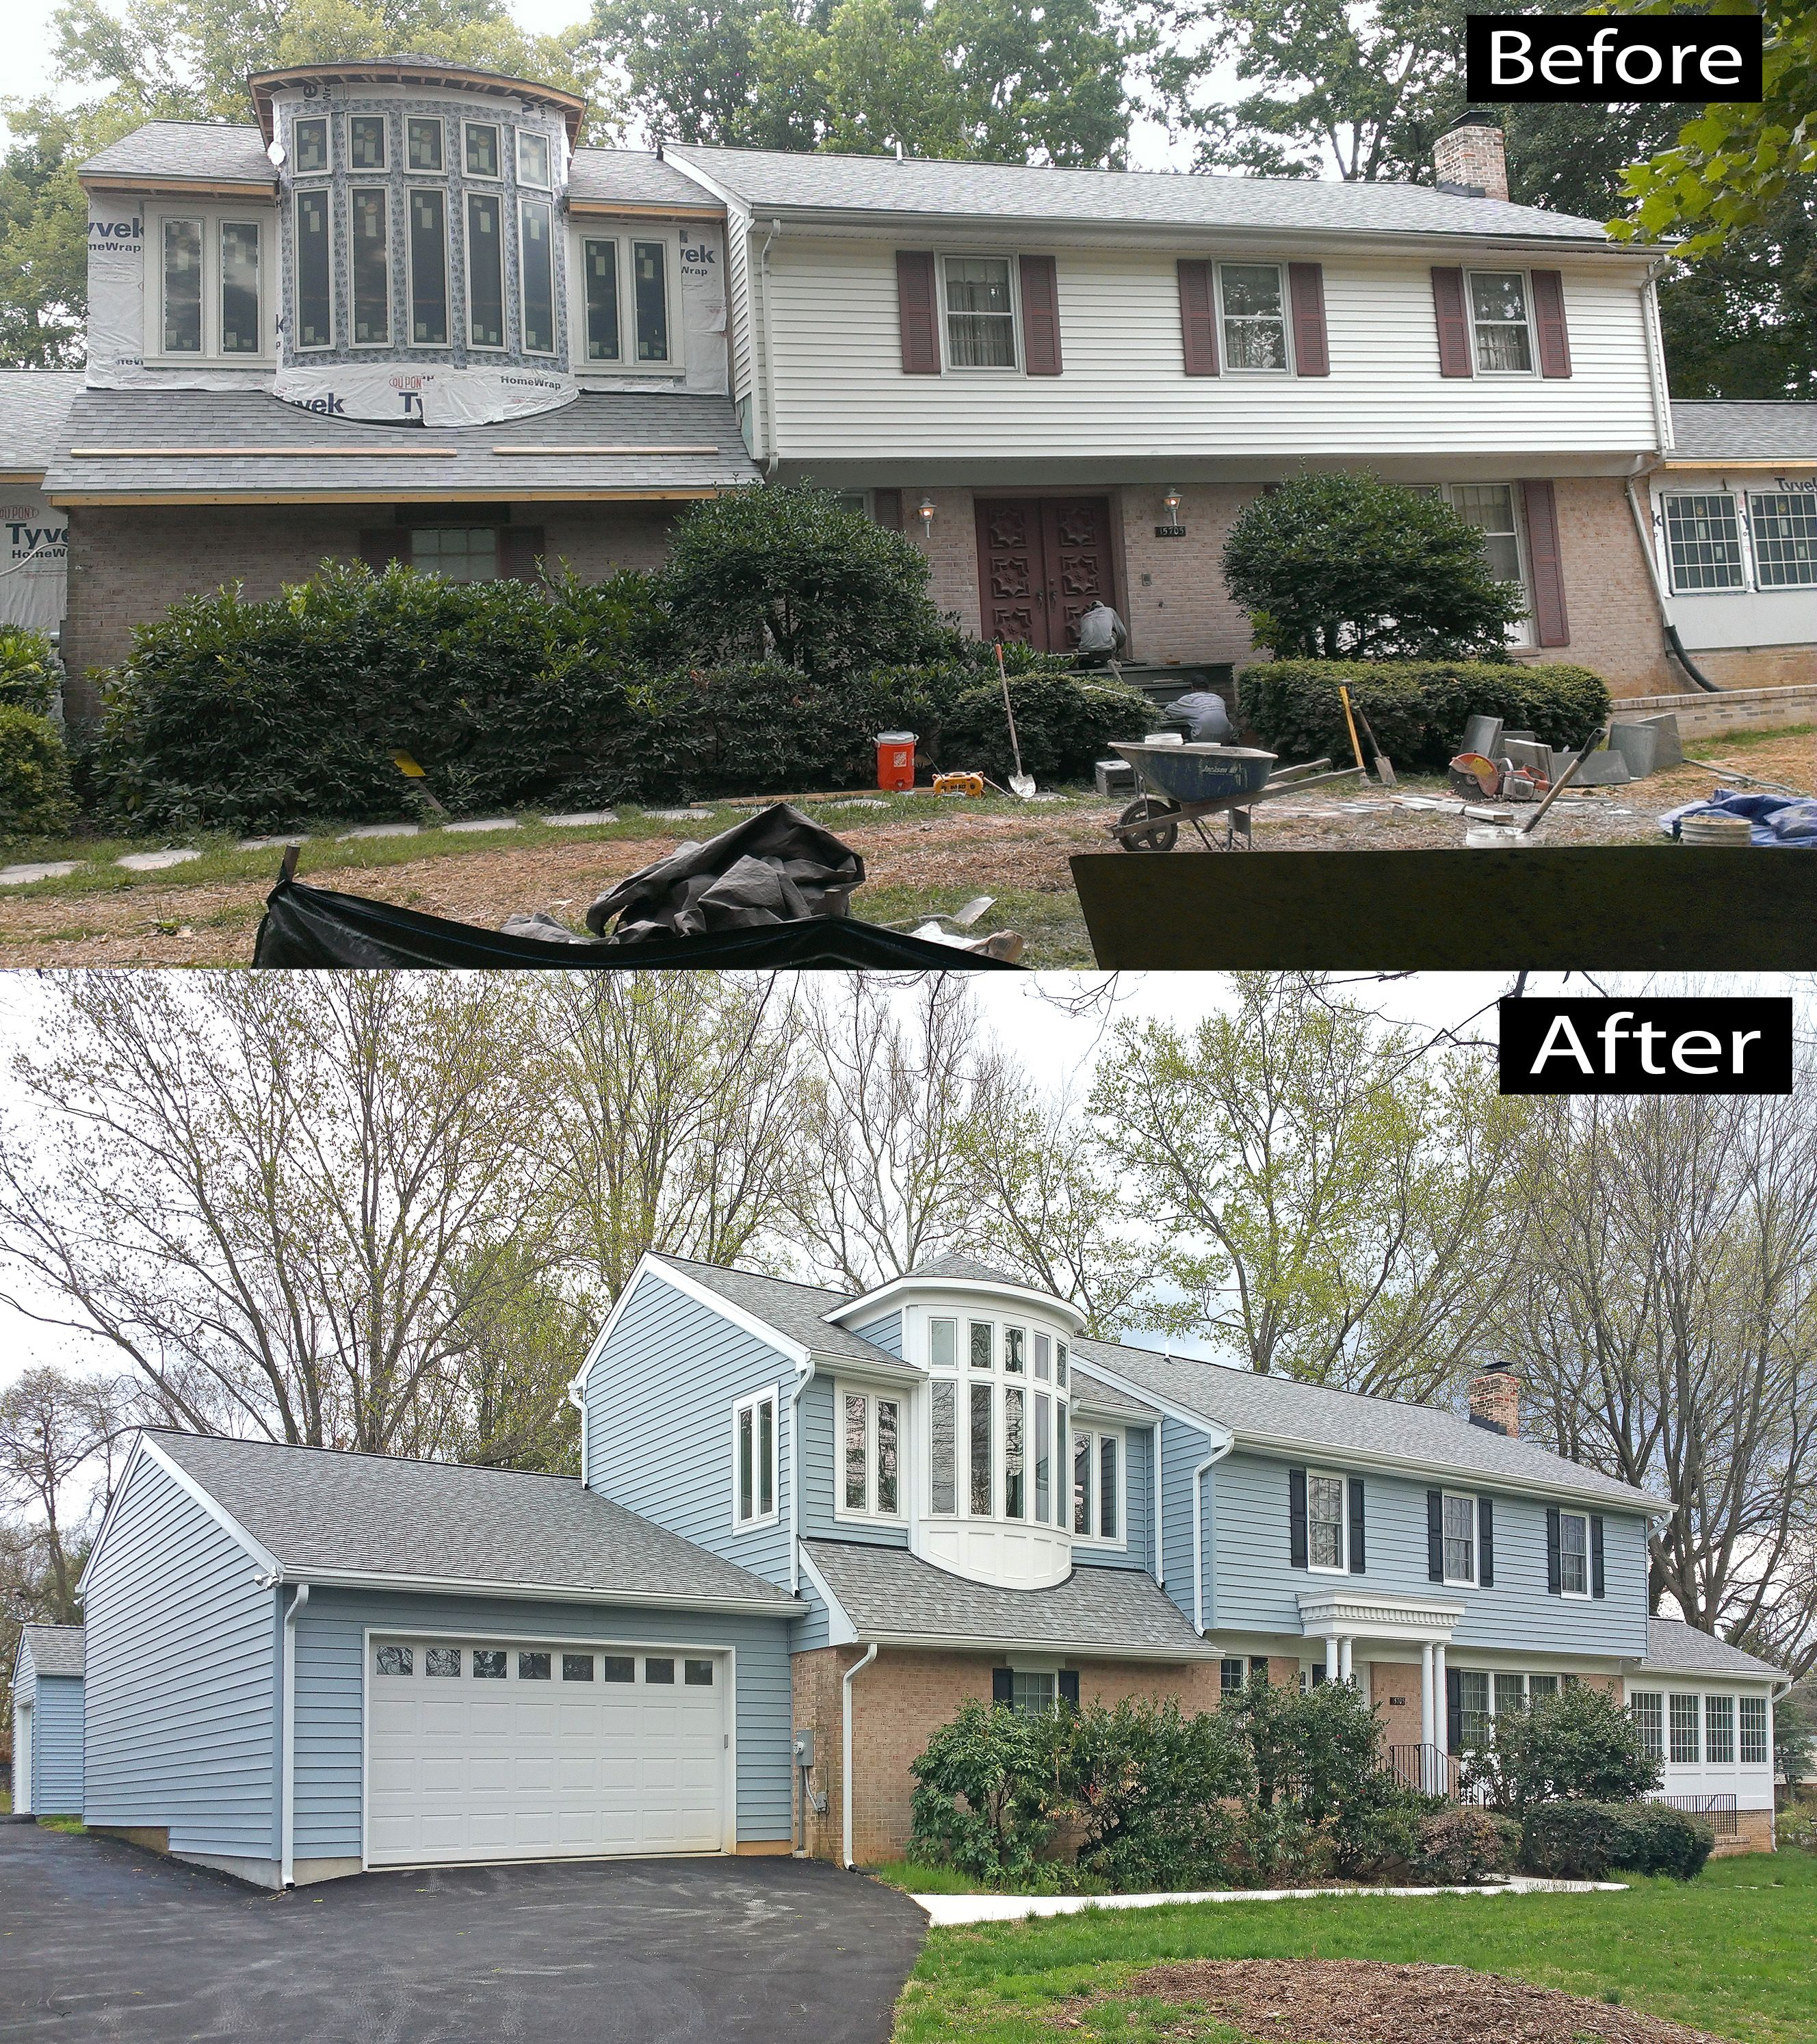 Install Pella Replacement And New Construction Windows And Doors Certainteed Cedarboard Insulated Siding Oxfo House Exterior Window Construction Vinyl Soffit